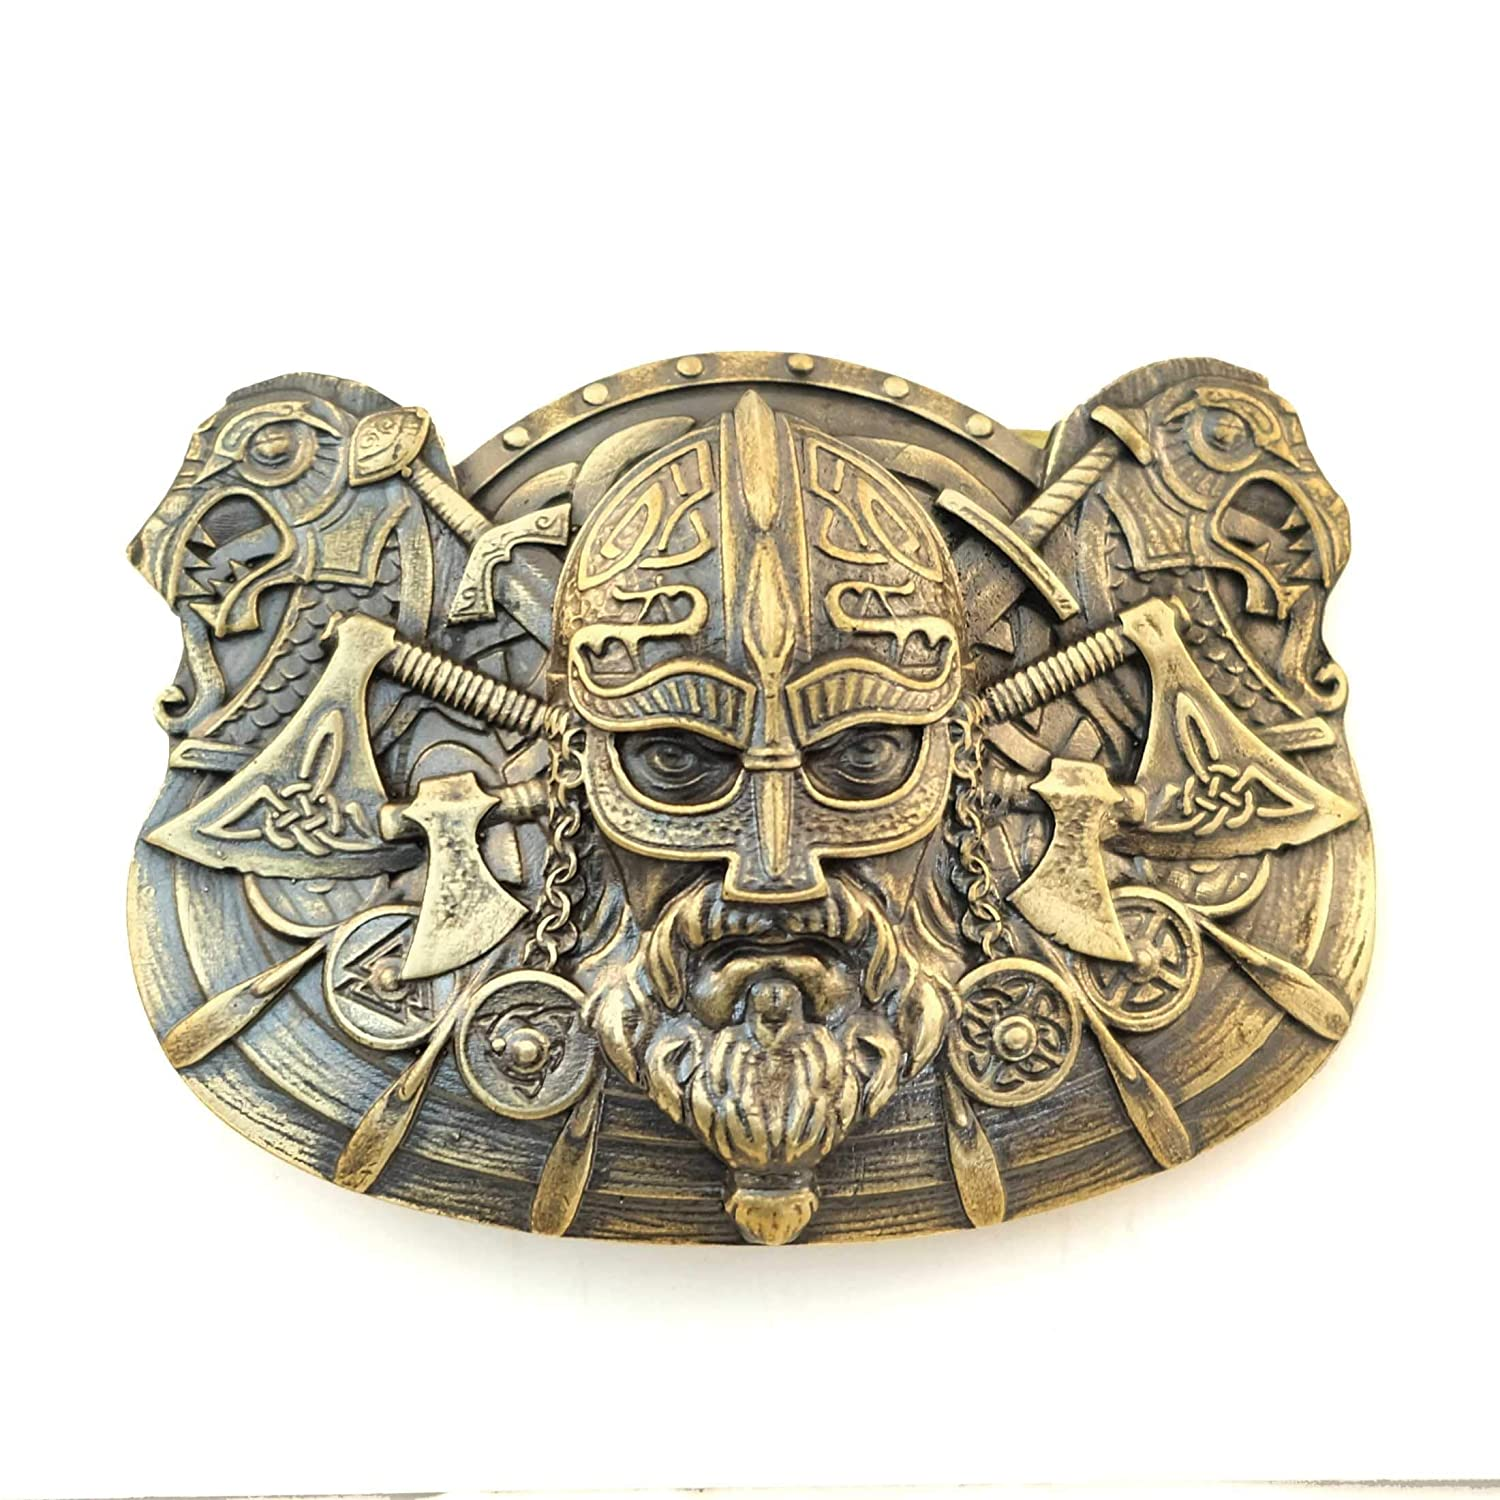 Belt buckle Viking, Handmade Scandinavian warrior military solid brass belt buckle buckle